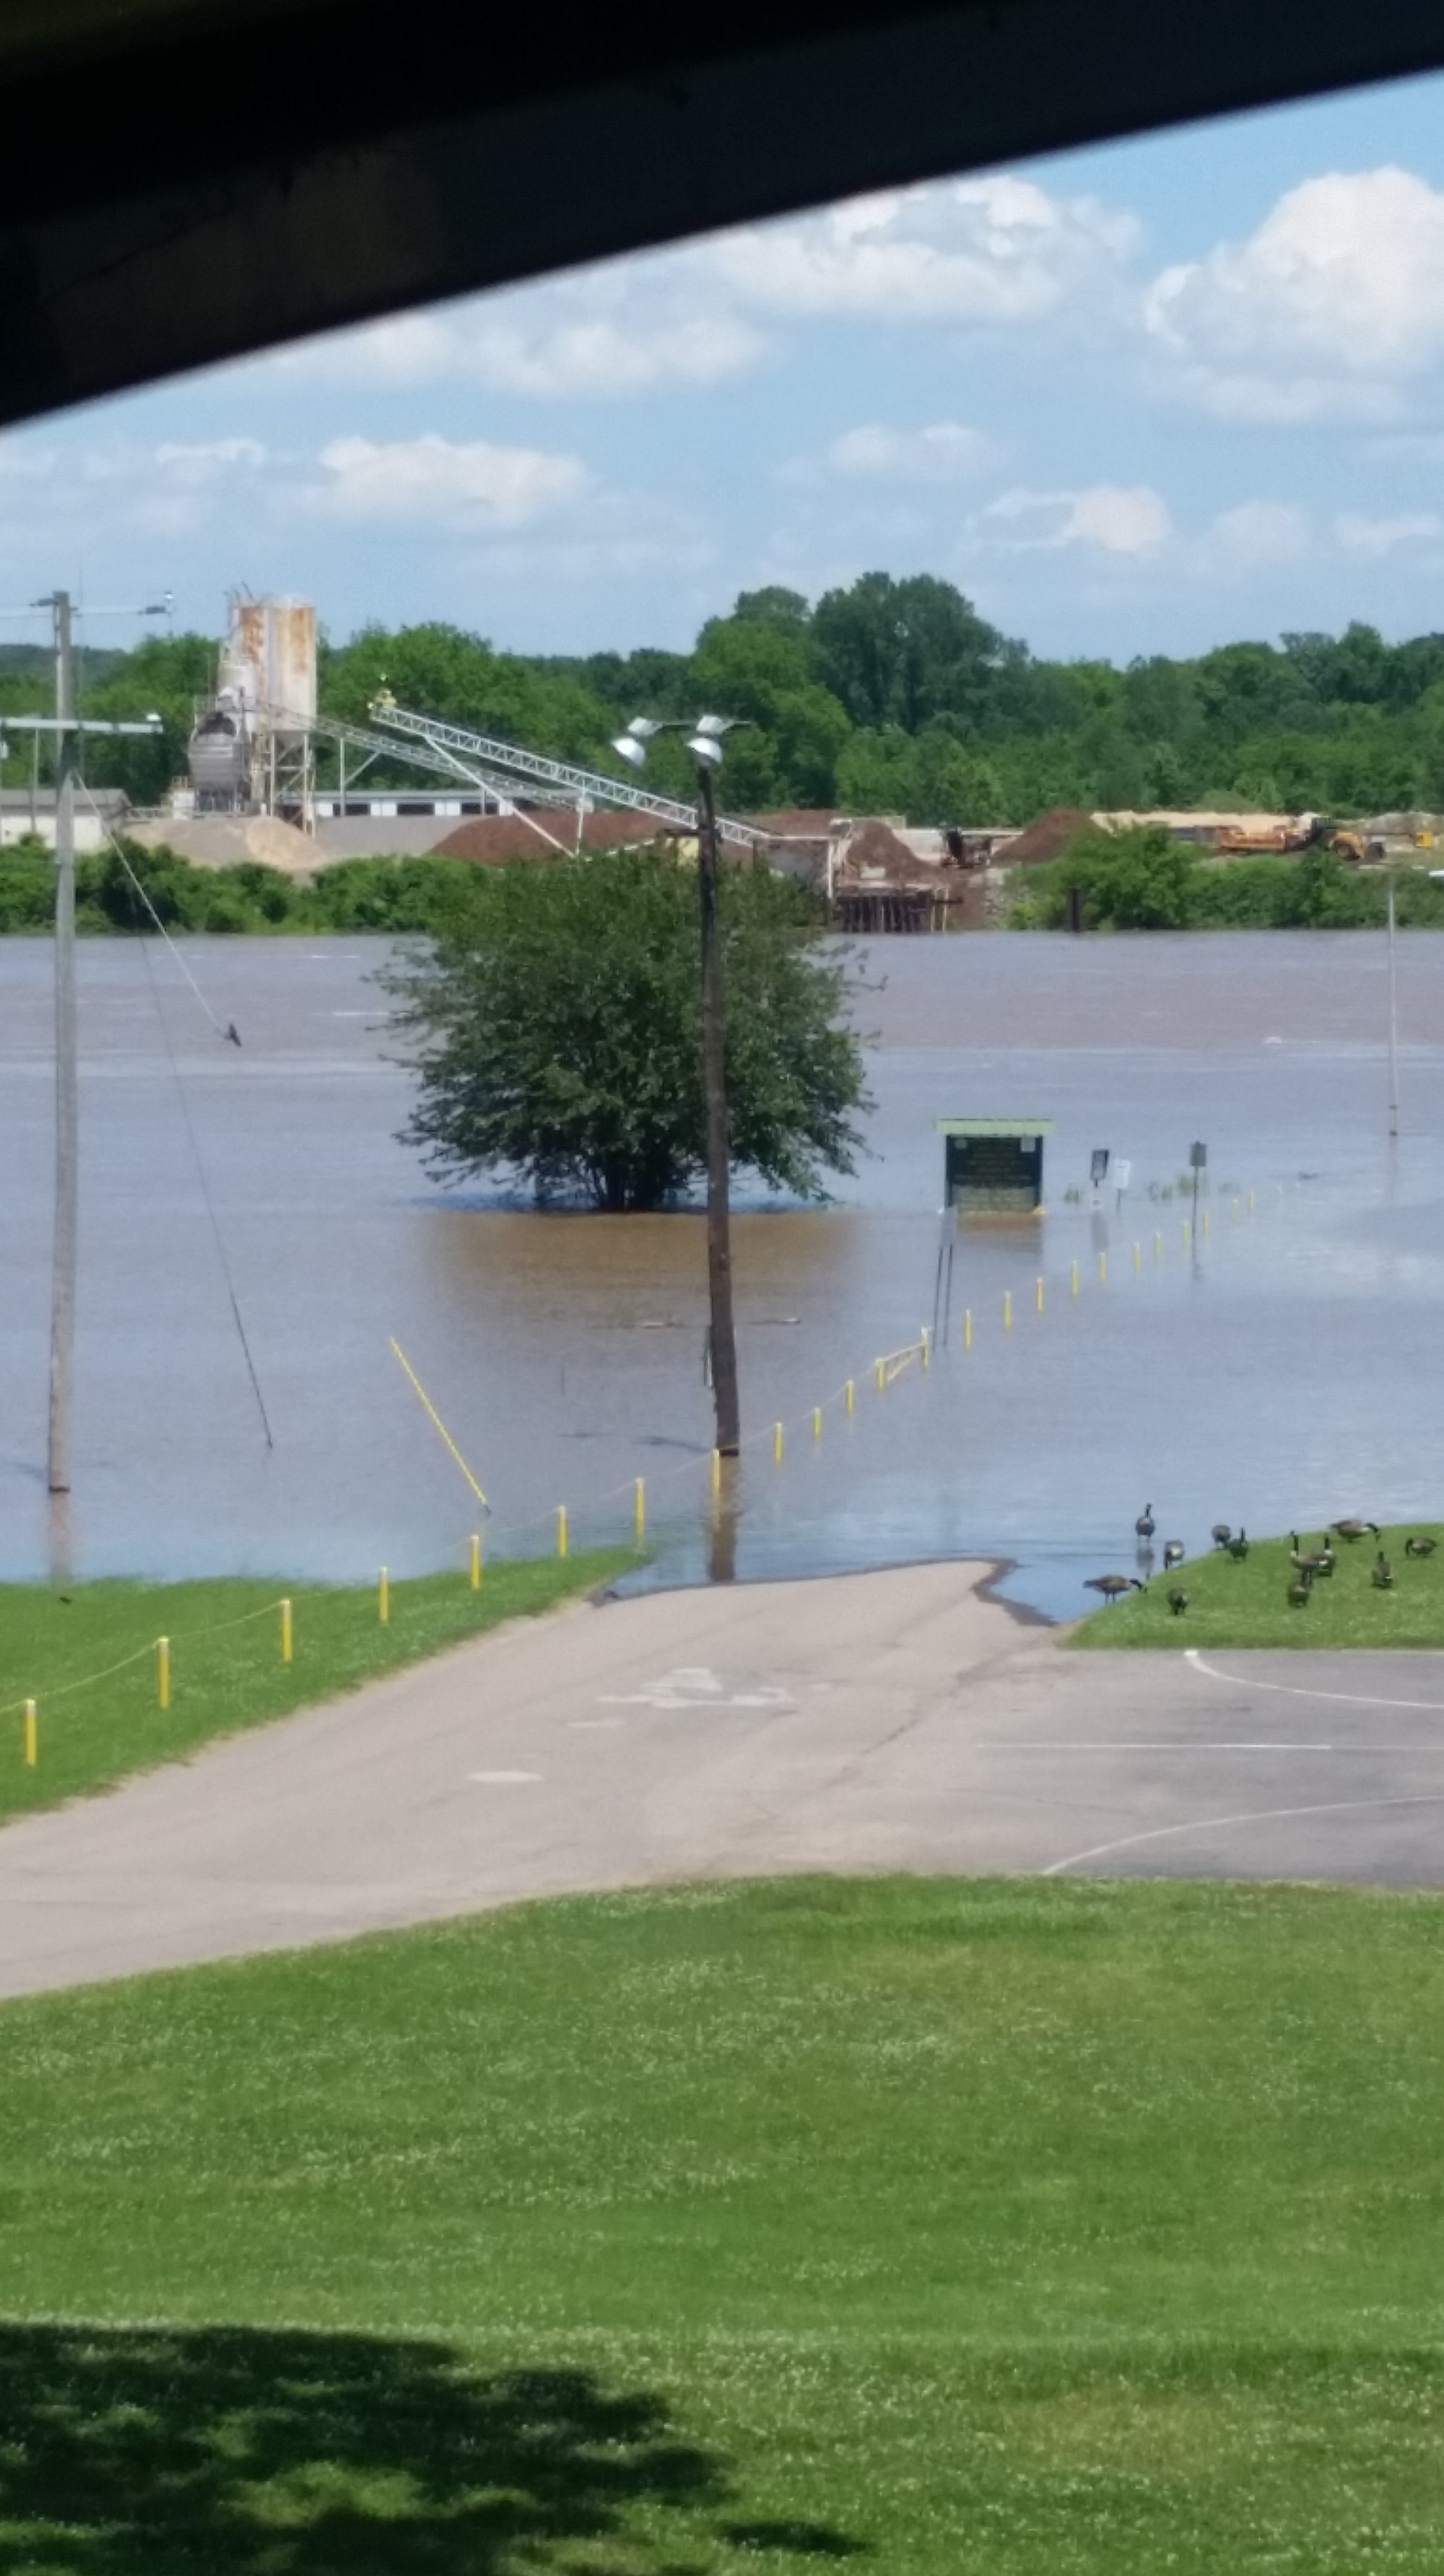 Dardanelle, Ar. Courtesy of Virgil Morgan. 5-24-19